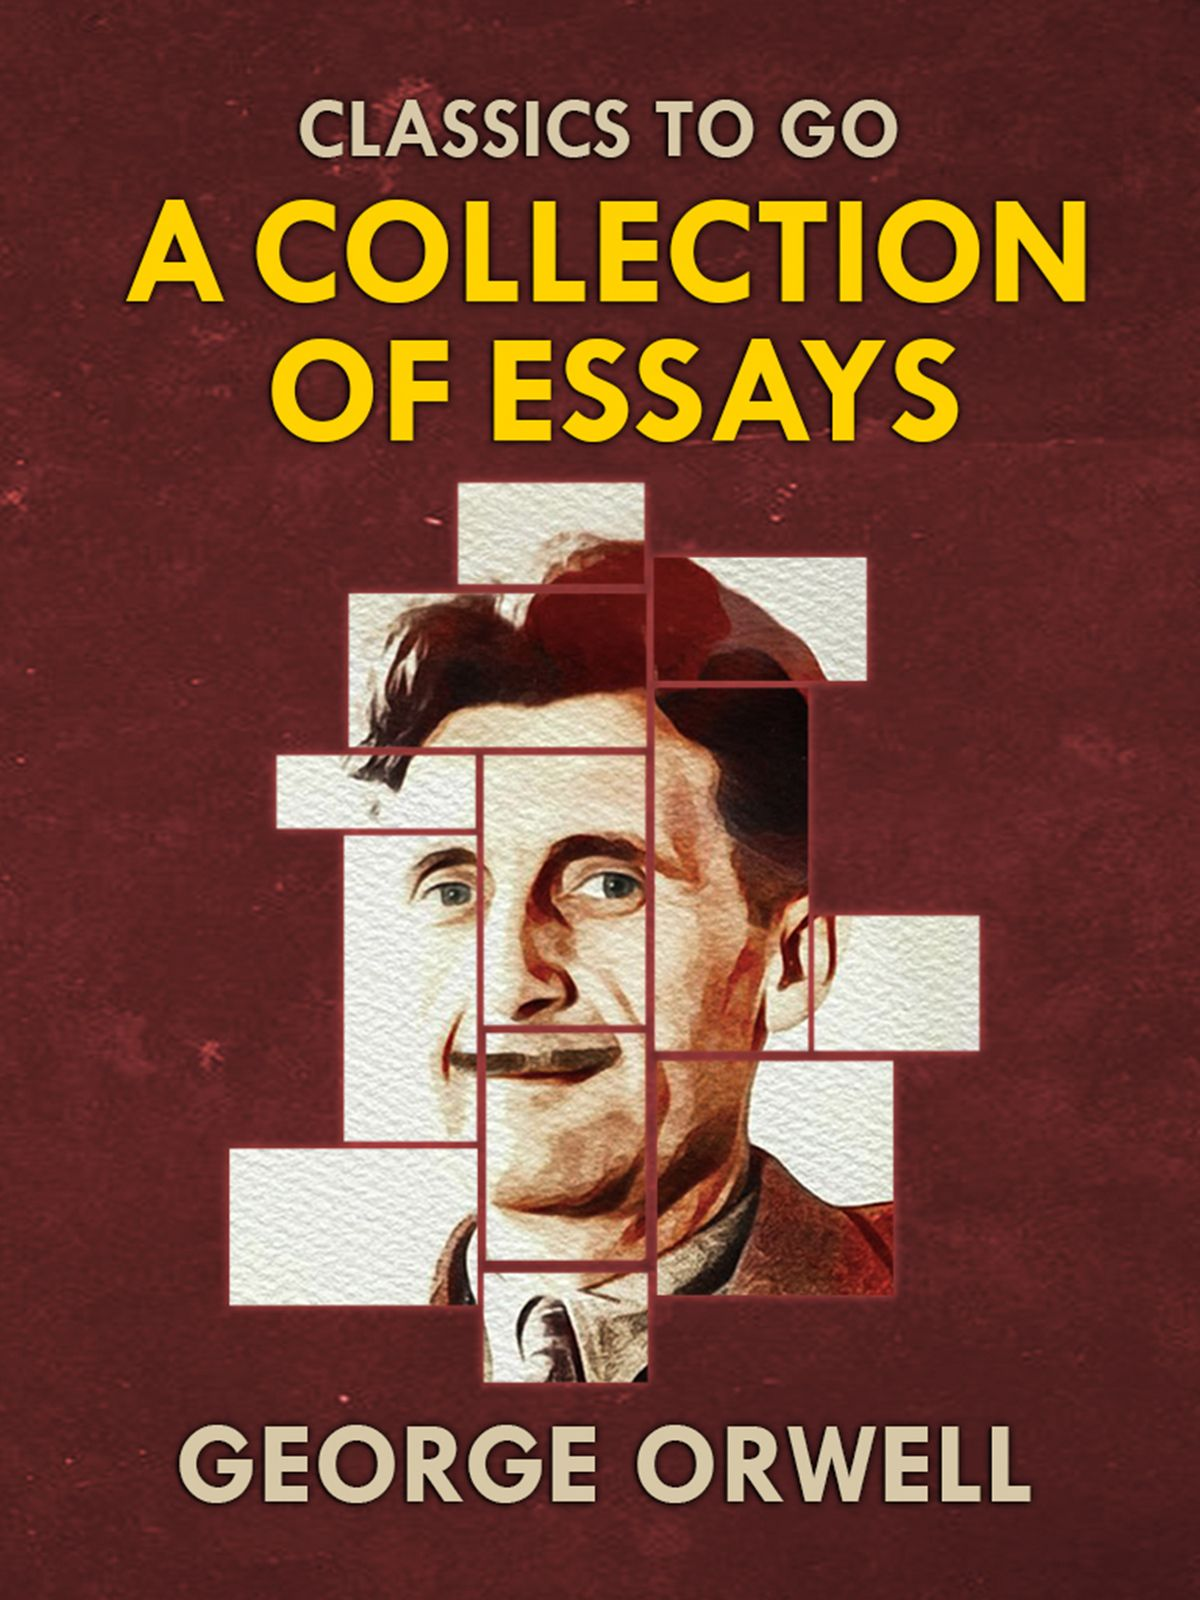 006 Essay Example Collections Of George Orwell Singular Essays Pdf Themes Full